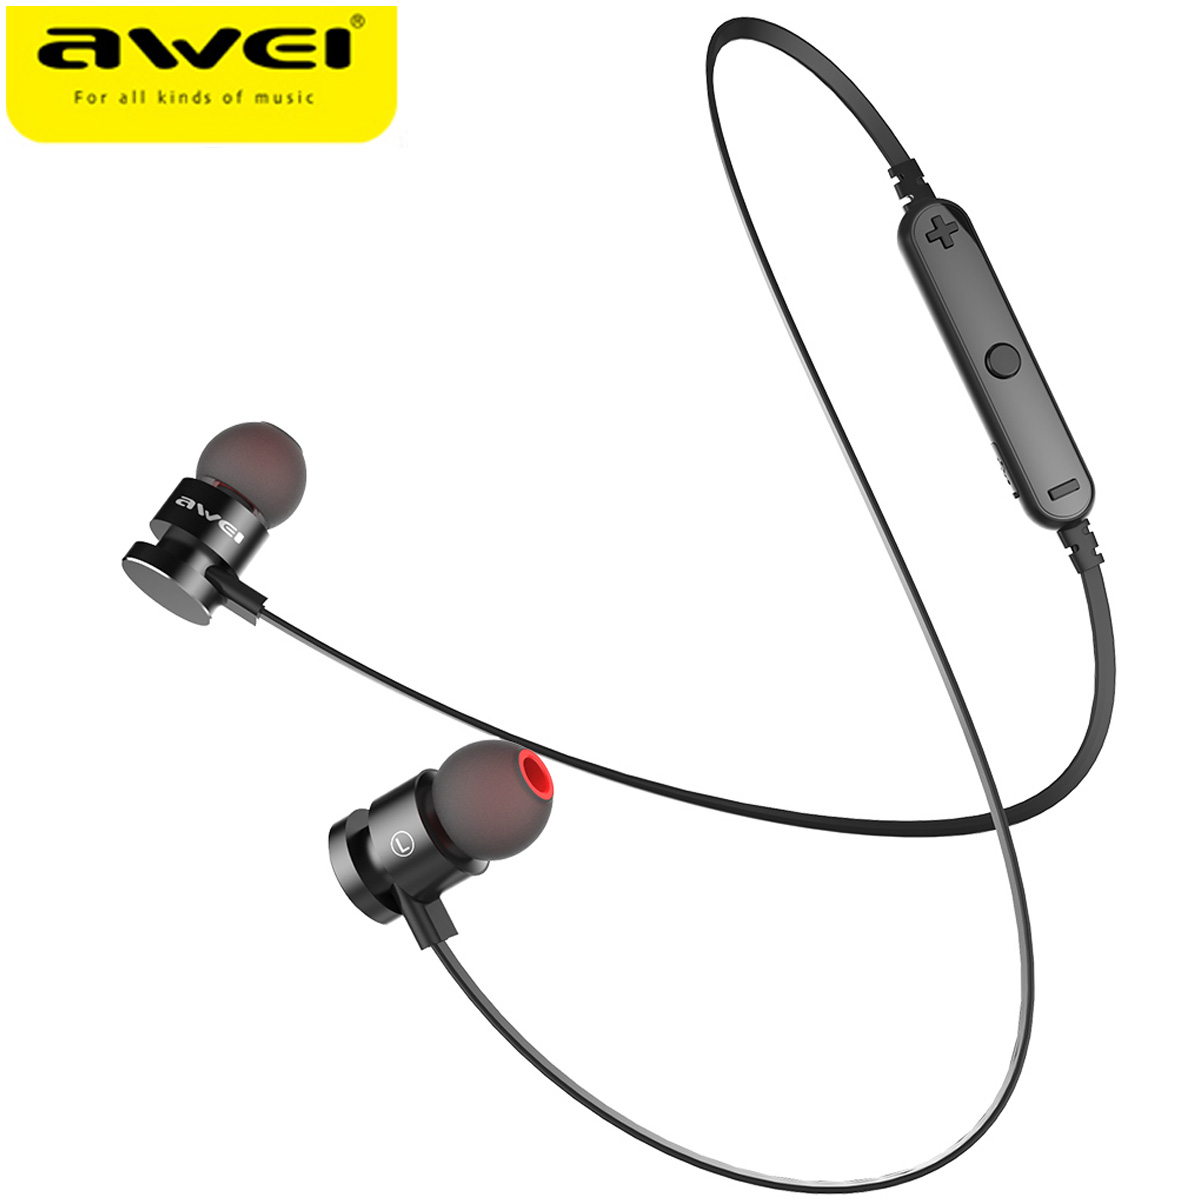 AWEI T11 Wireless Headphone Bluetooth Earphone Fone de ouvido For Phone Kulakl k Neckband Ecouteur Auriculares Bluetooth V4.2